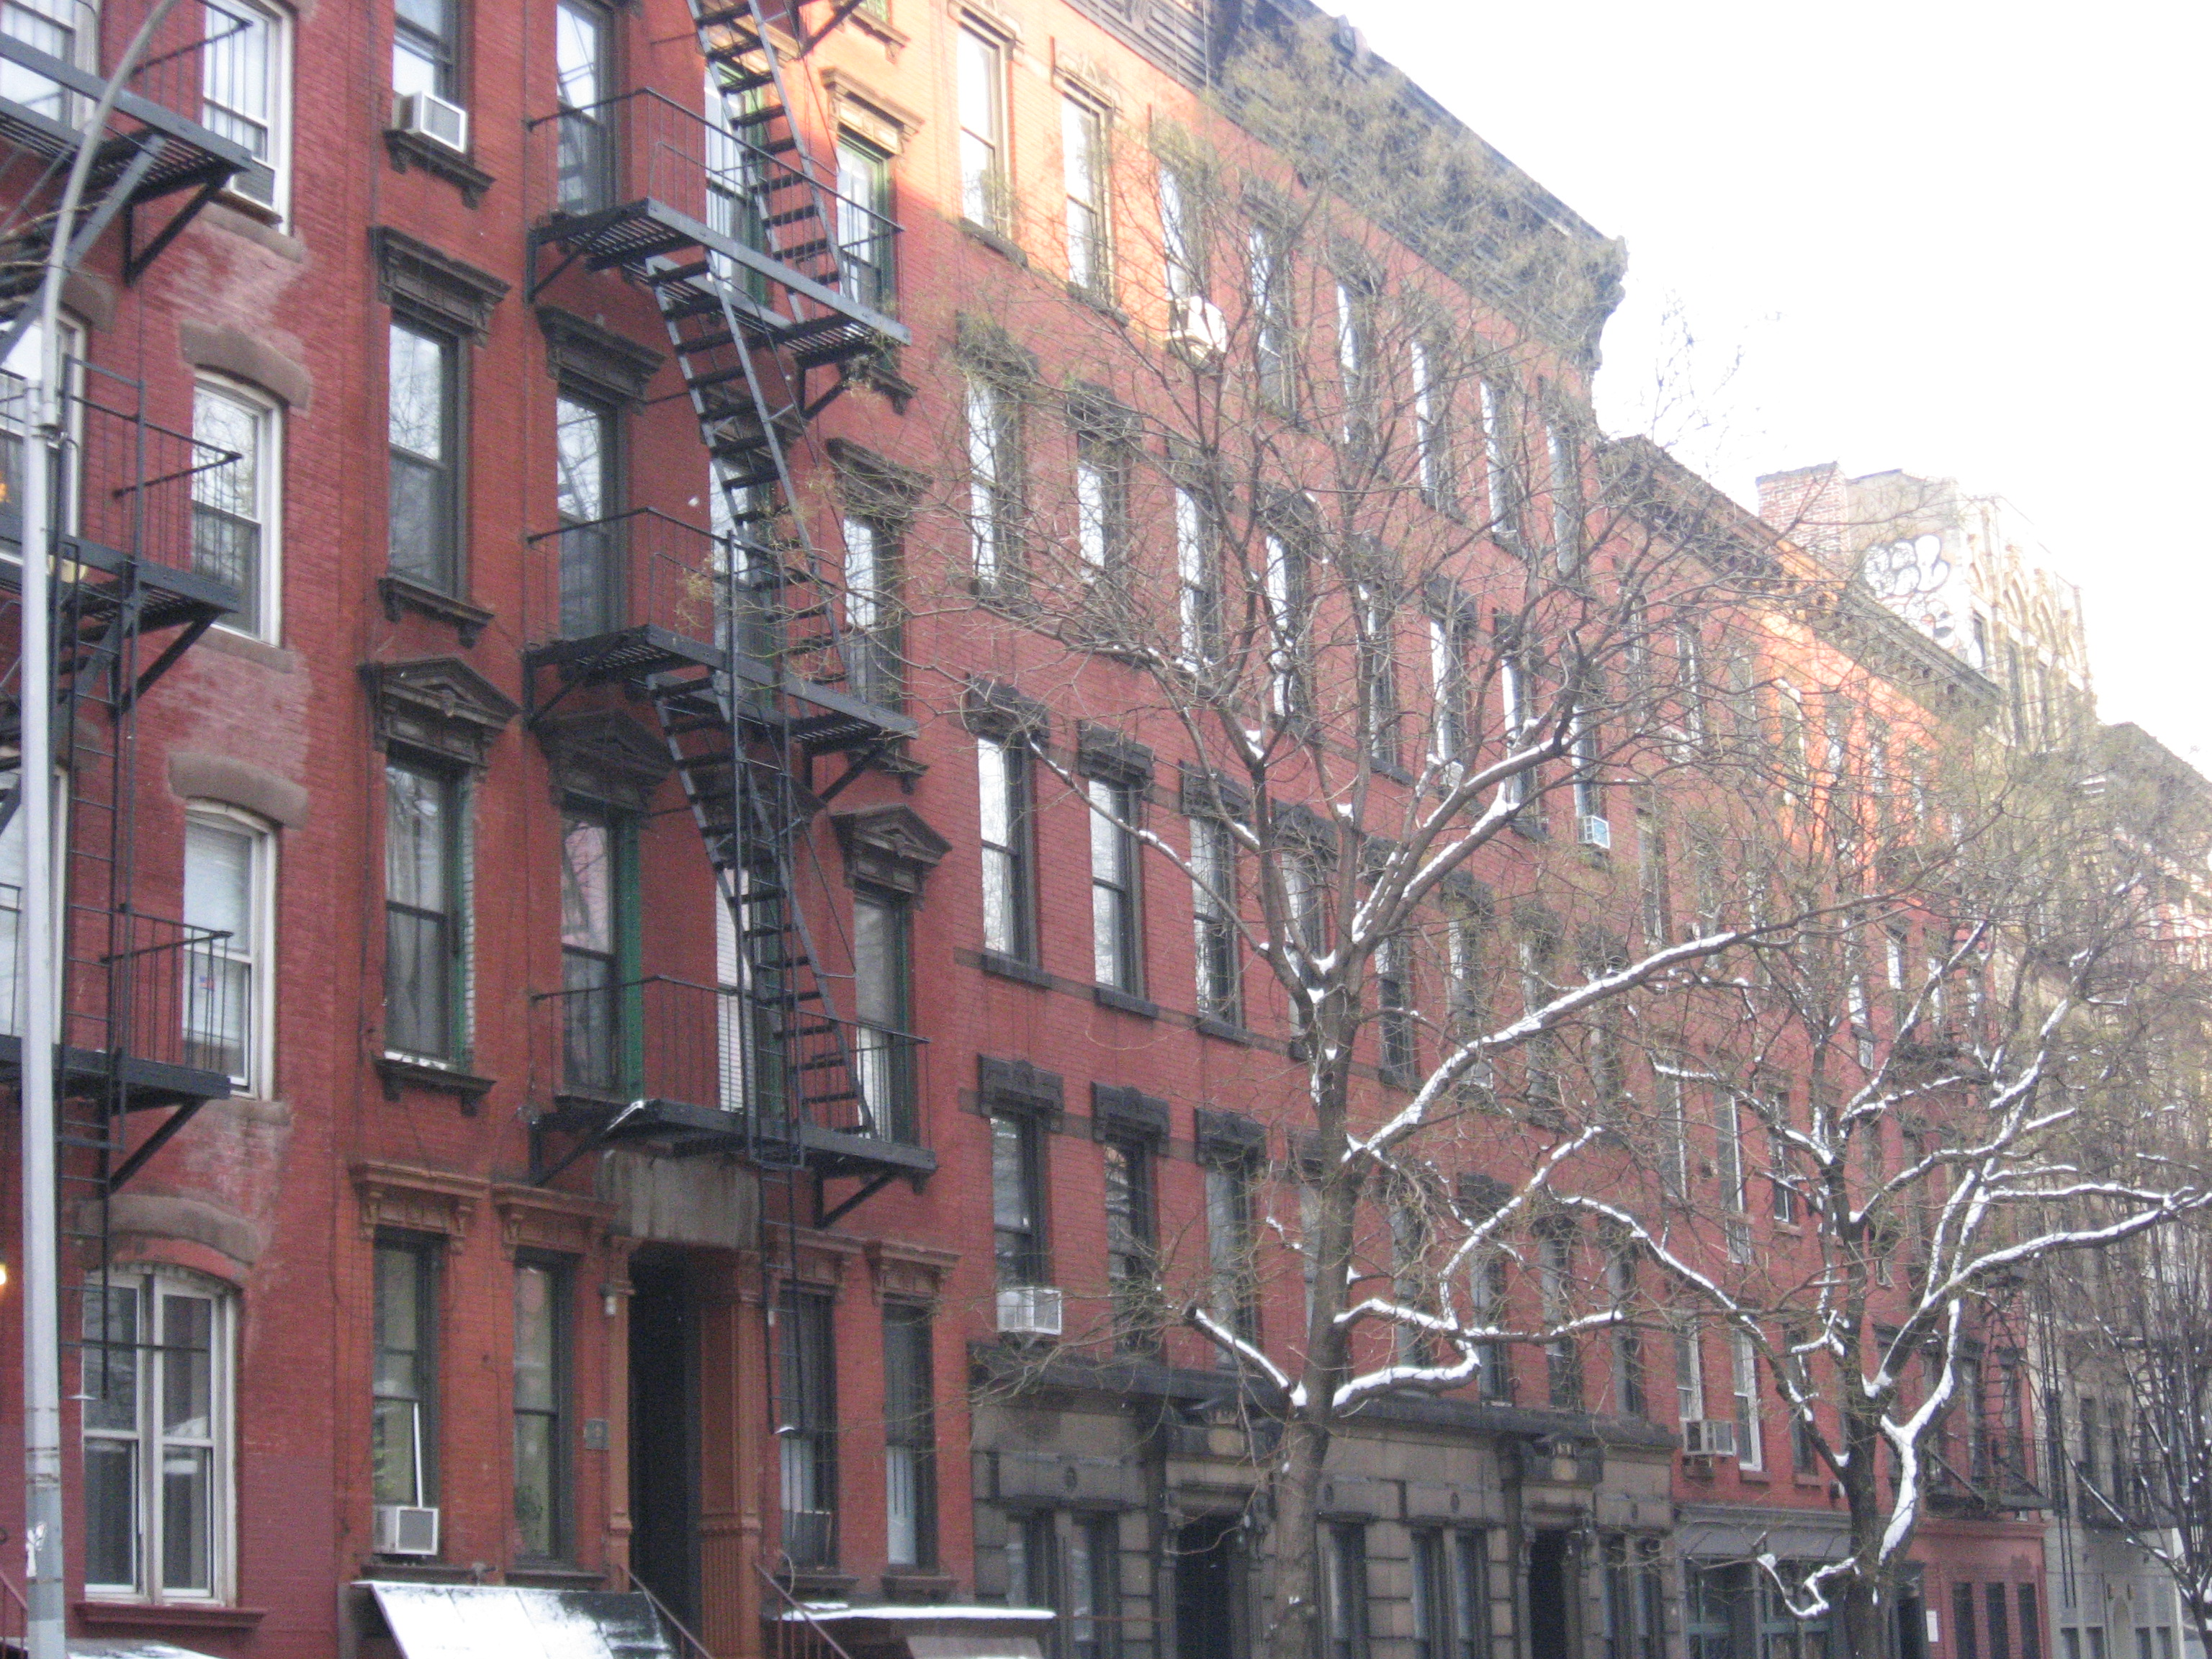 Photographs Of Tenement Houses On Orchard Street, New York City Pictures of tenement houses